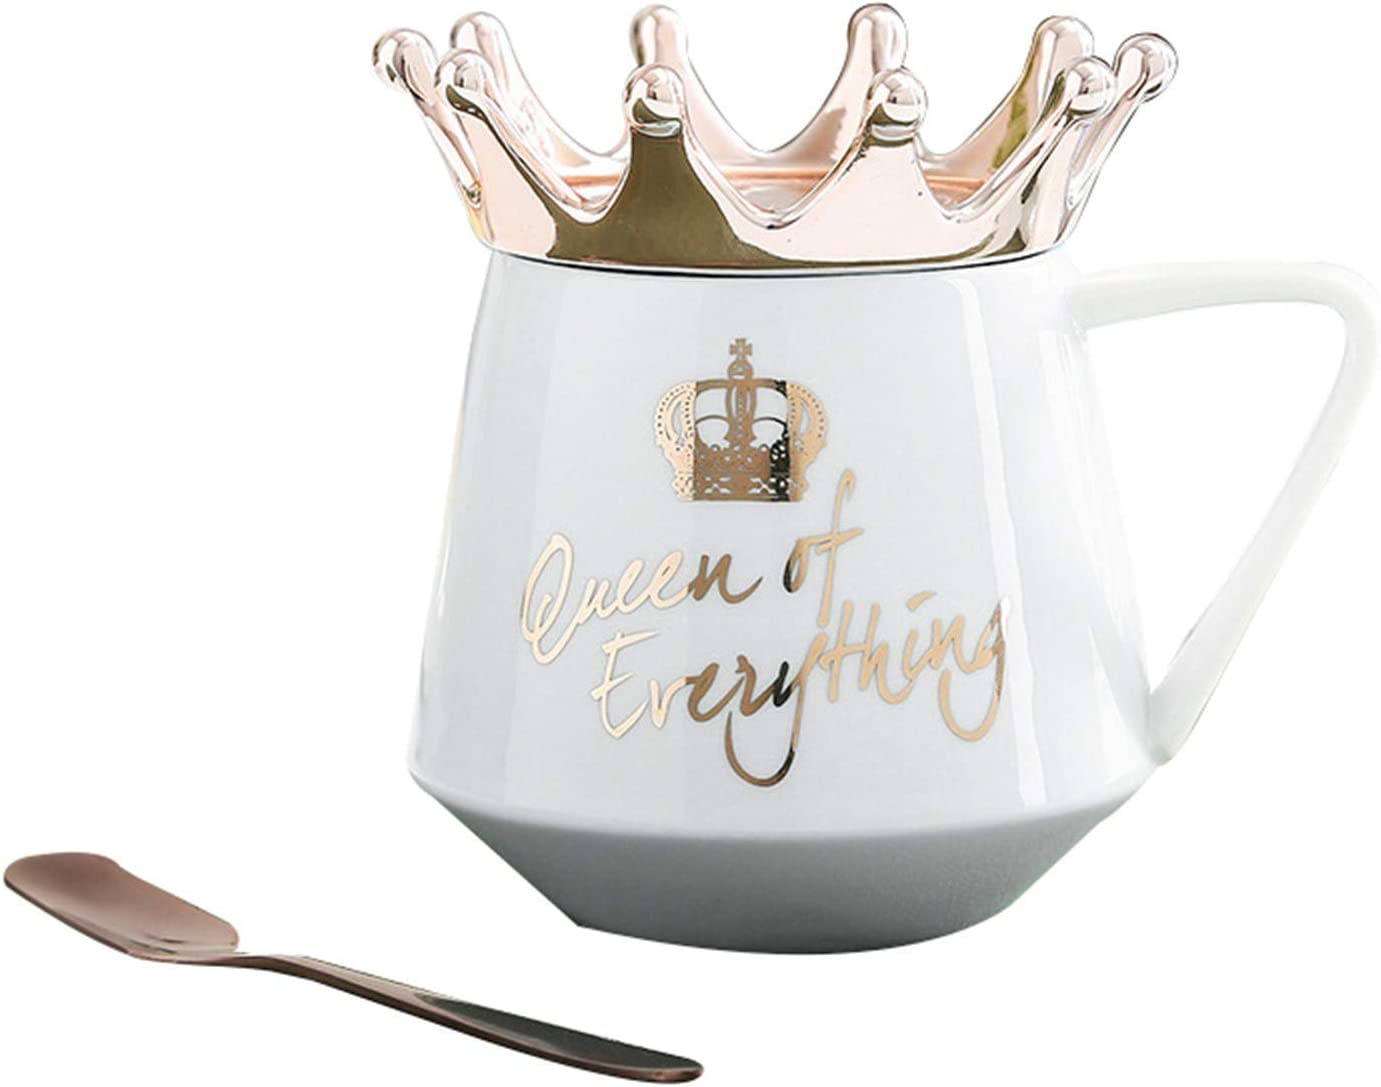 ZS ZHISHANG Queen of Everything Mug with Crown Lid And Spoon Ceramic Coffee Cup Gift for Girlfriend Wife